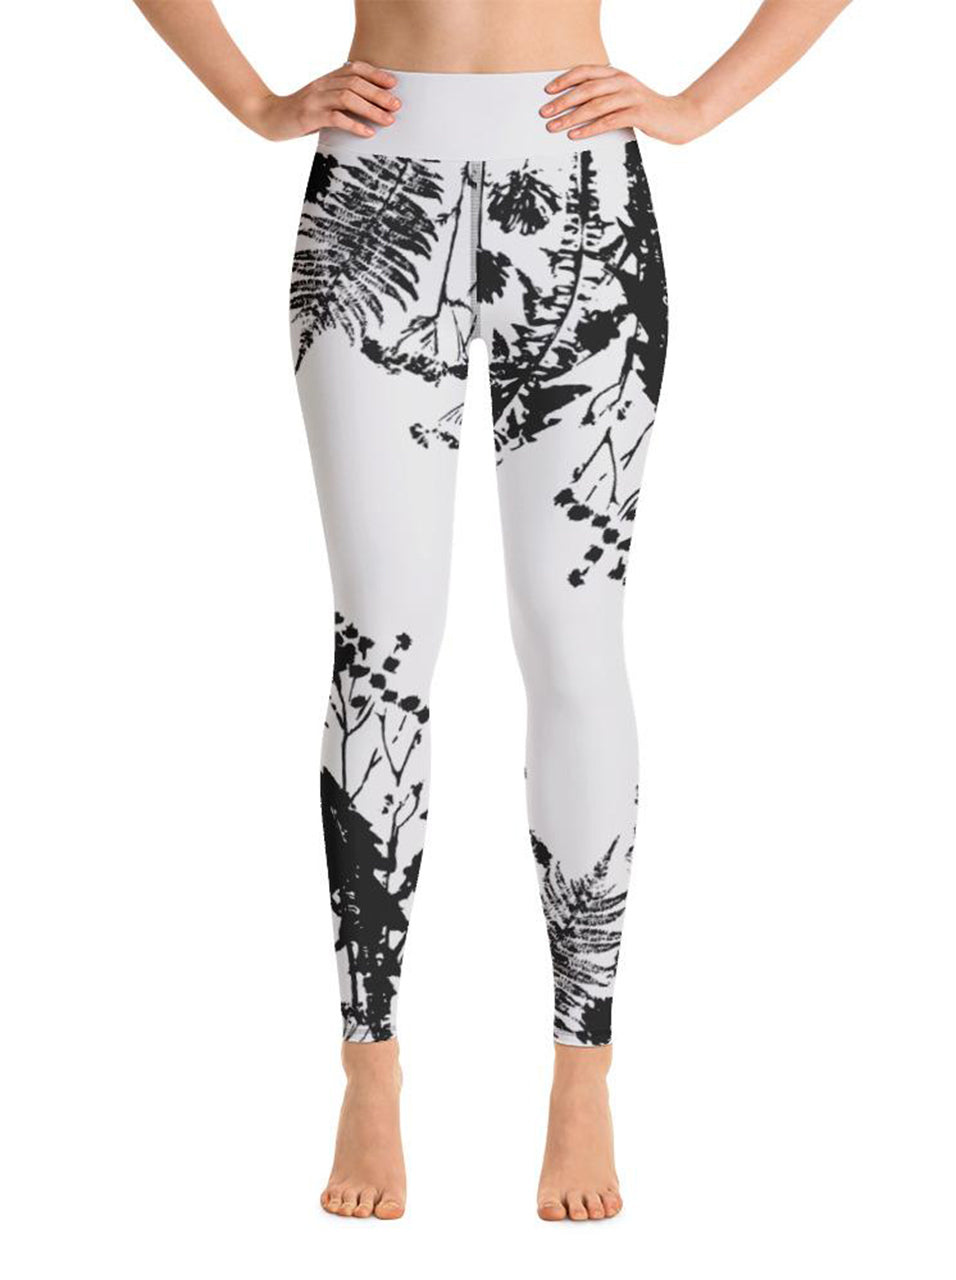 Weeds Leggings